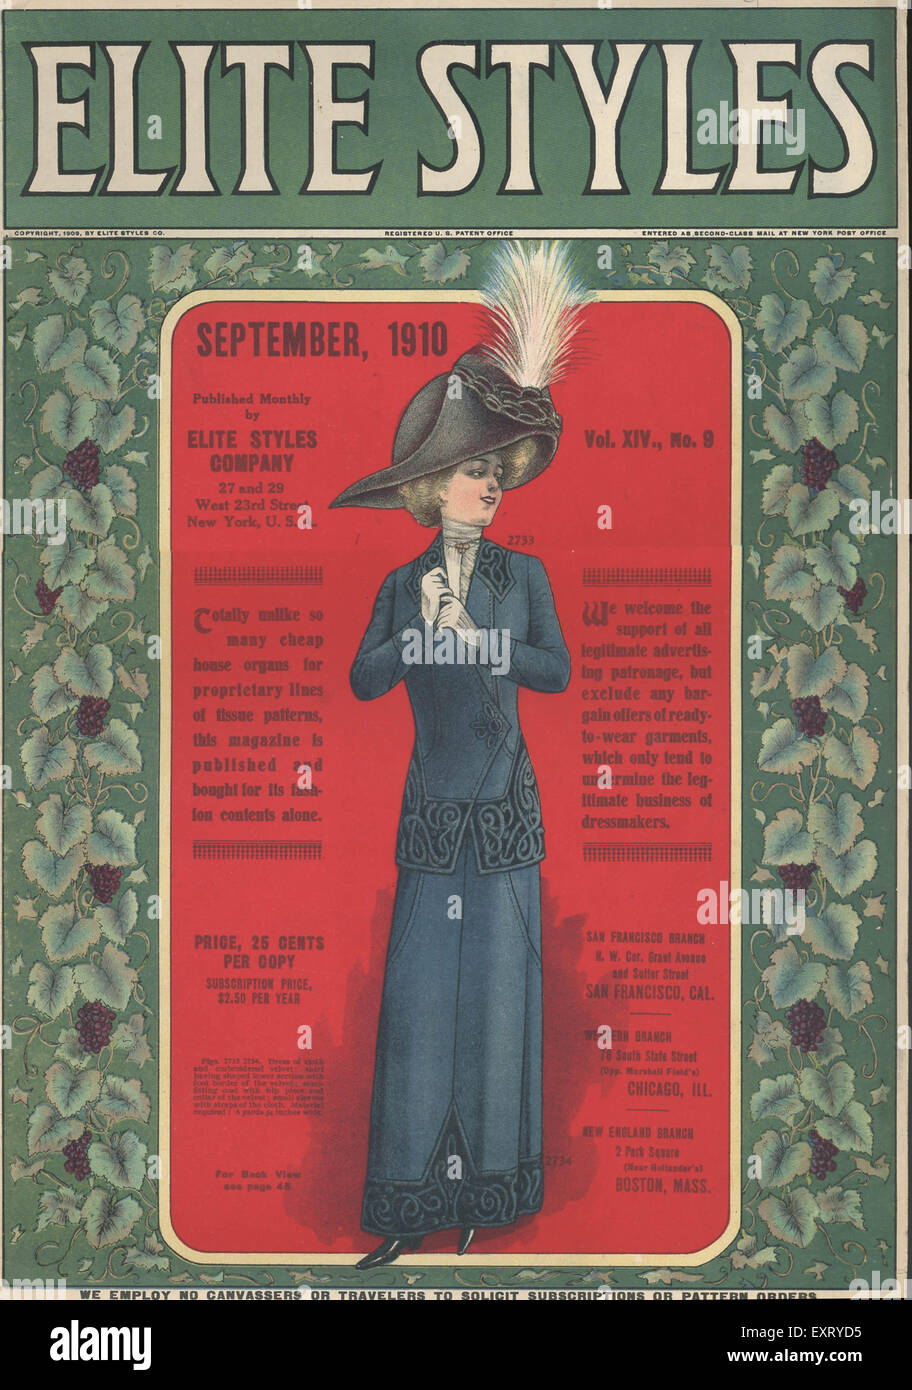 1910s USA Elite Styles Magazine Cover - Stock Image